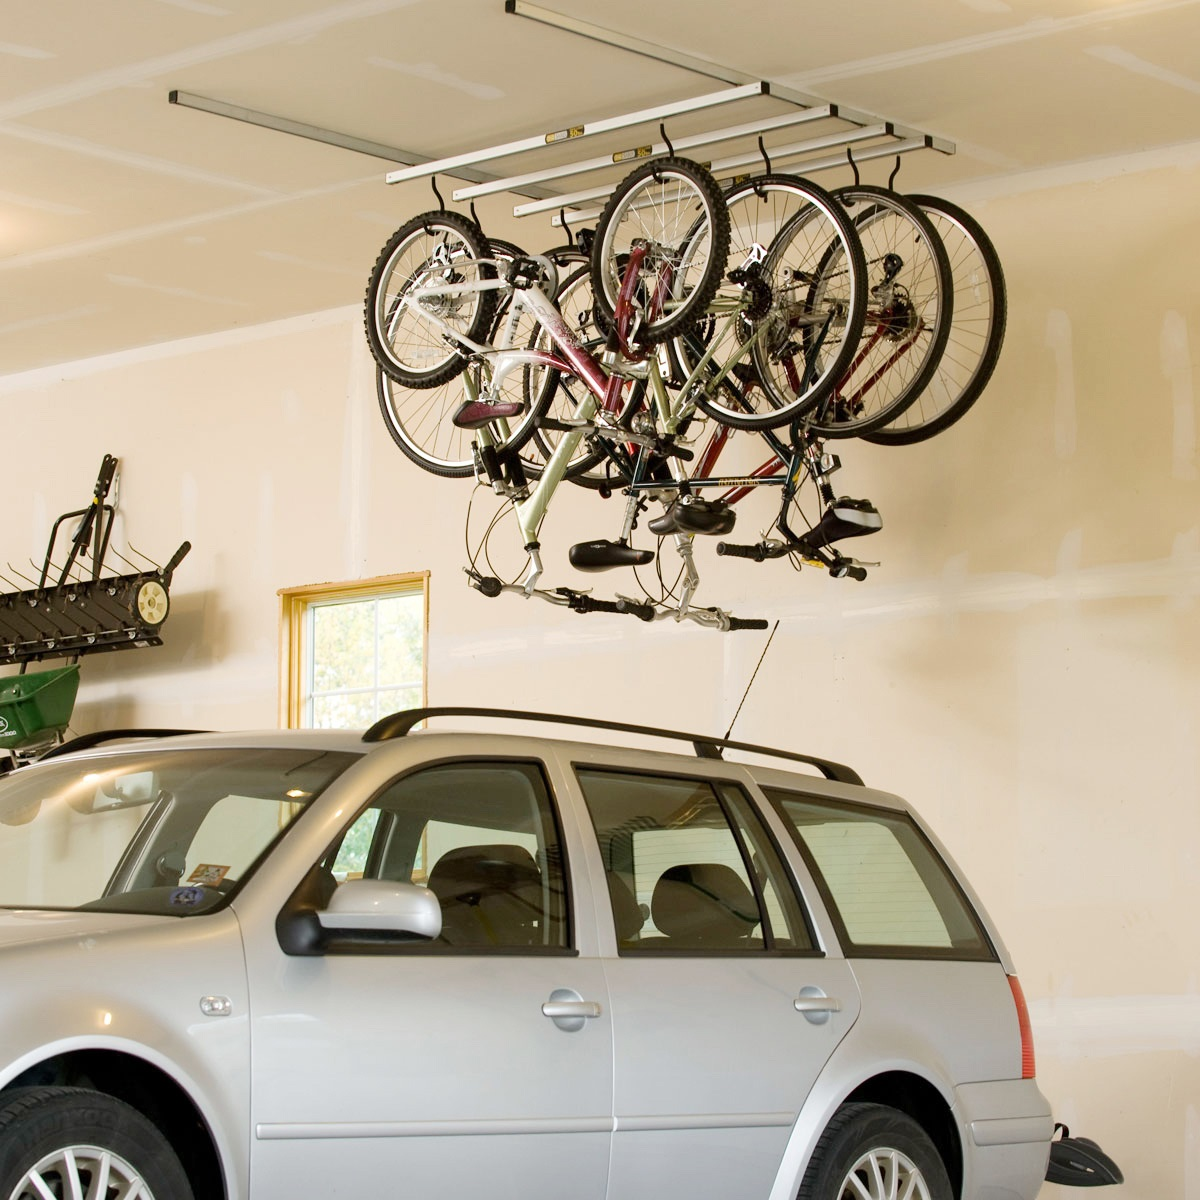 Saris cycleglide 4 bike ceiling storage system for Rack pour garage